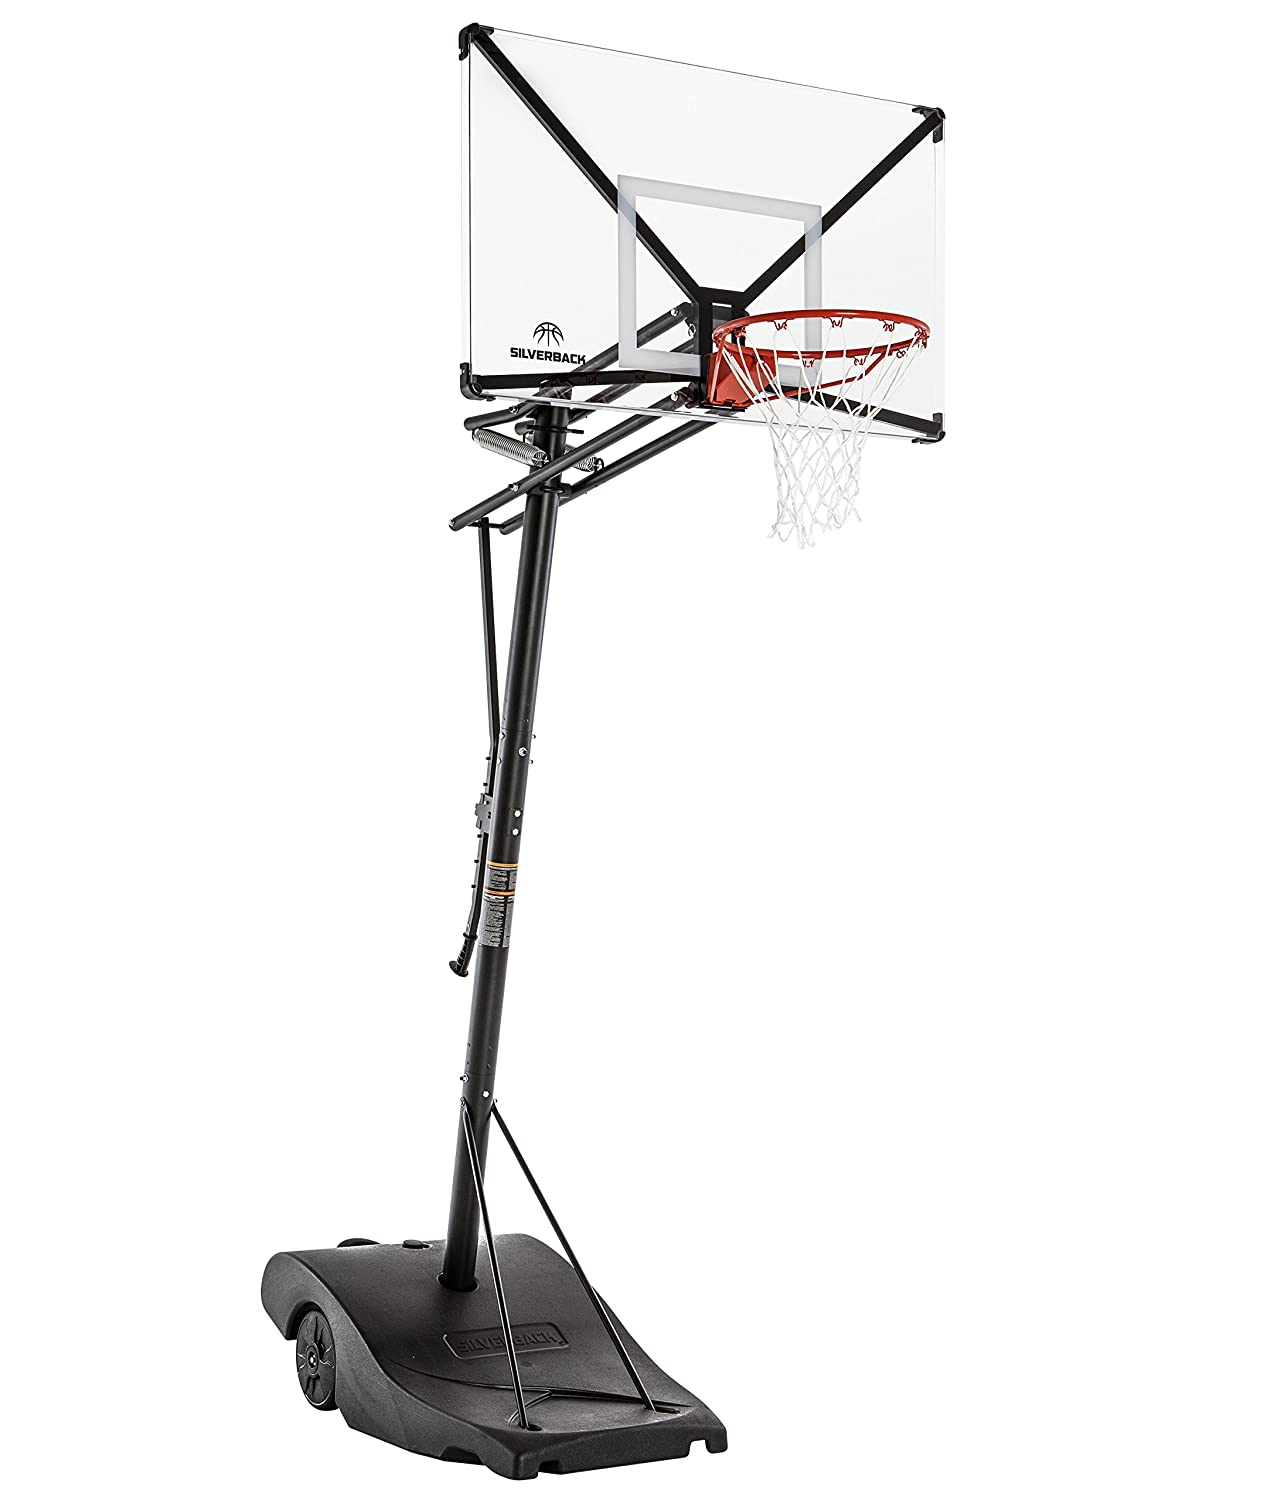 Silverback Nxt Portable Basketball Hoop Product Review